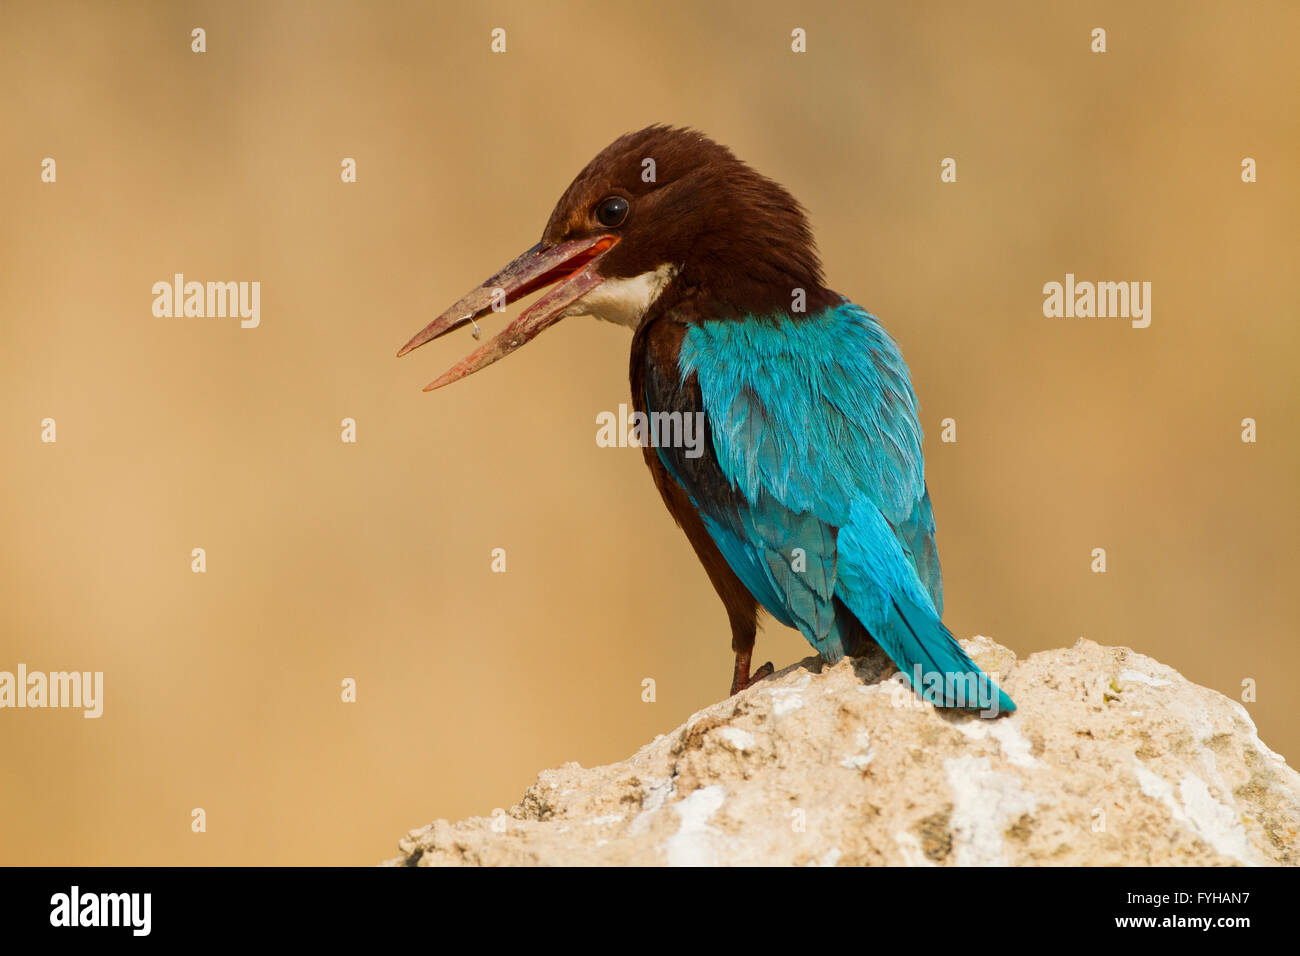 White-throated Kingfisher (Halcyon smyrnensis) Photographed in the Negev Desert, Israel in December - Stock Image